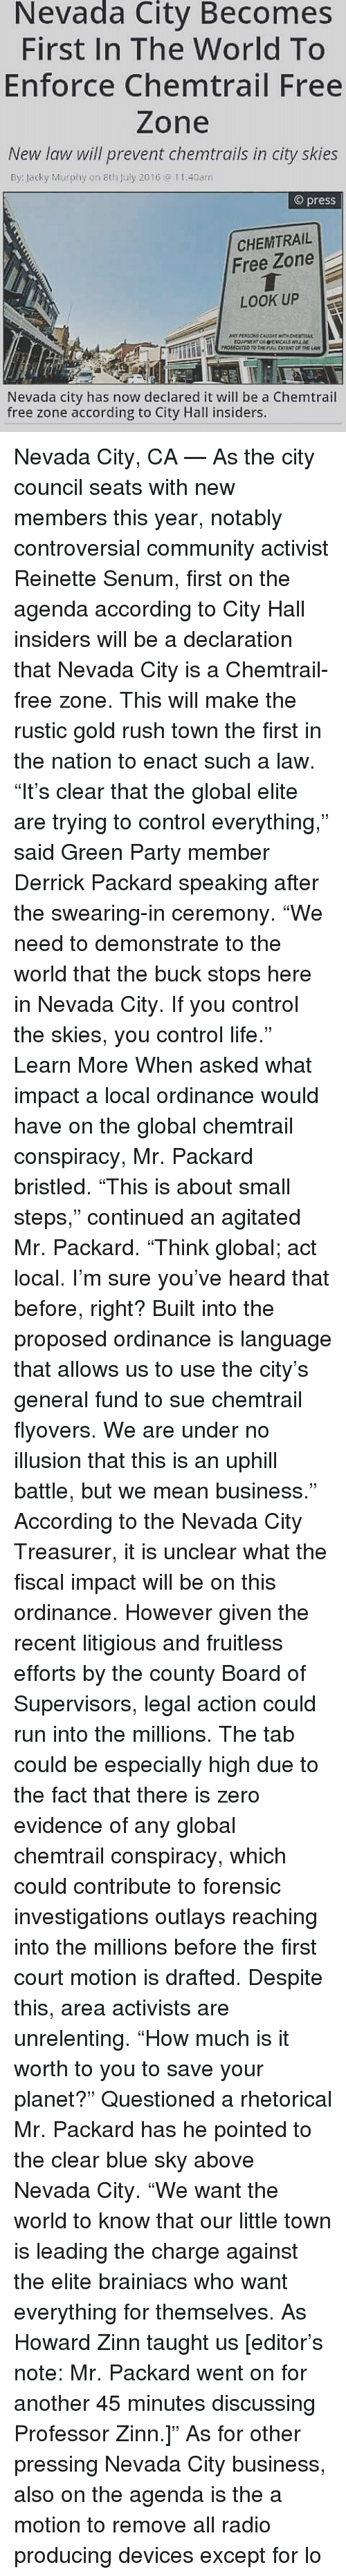 """Community, Life, and Memes: Nevada  City Becomes  First In The World To  Enforce Chemtrail Free  Zone  New law will prevent chemtrails in city skies  By: lacky Murphy on 8th July 2016 40am  © press  CHEMTRAIL  Free Zone  LOOK UP  ANY PERSON CAUGHT WITH OHt  Nevada city has now declared it will be a Chemtrail  free zone according to City Hall insiders. Nevada City, CA — As the city council seats with new members this year, notably controversial community activist Reinette Senum, first on the agenda according to City Hall insiders will be a declaration that Nevada City is a Chemtrail-free zone. This will make the rustic gold rush town the first in the nation to enact such a law. """"It's clear that the global elite are trying to control everything,"""" said Green Party member Derrick Packard speaking after the swearing-in ceremony. """"We need to demonstrate to the world that the buck stops here in Nevada City. If you control the skies, you control life."""" Learn More When asked what impact a local ordinance would have on the global chemtrail conspiracy, Mr. Packard bristled. """"This is about small steps,"""" continued an agitated Mr. Packard. """"Think global; act local. I'm sure you've heard that before, right? Built into the proposed ordinance is language that allows us to use the city's general fund to sue chemtrail flyovers. We are under no illusion that this is an uphill battle, but we mean business."""" According to the Nevada City Treasurer, it is unclear what the fiscal impact will be on this ordinance. However given the recent litigious and fruitless efforts by the county Board of Supervisors, legal action could run into the millions. The tab could be especially high due to the fact that there is zero evidence of any global chemtrail conspiracy, which could contribute to forensic investigations outlays reaching into the millions before the first court motion is drafted. Despite this, area activists are unrelenting. """"How much is it worth to you to save your planet?"""" Questioned a r"""